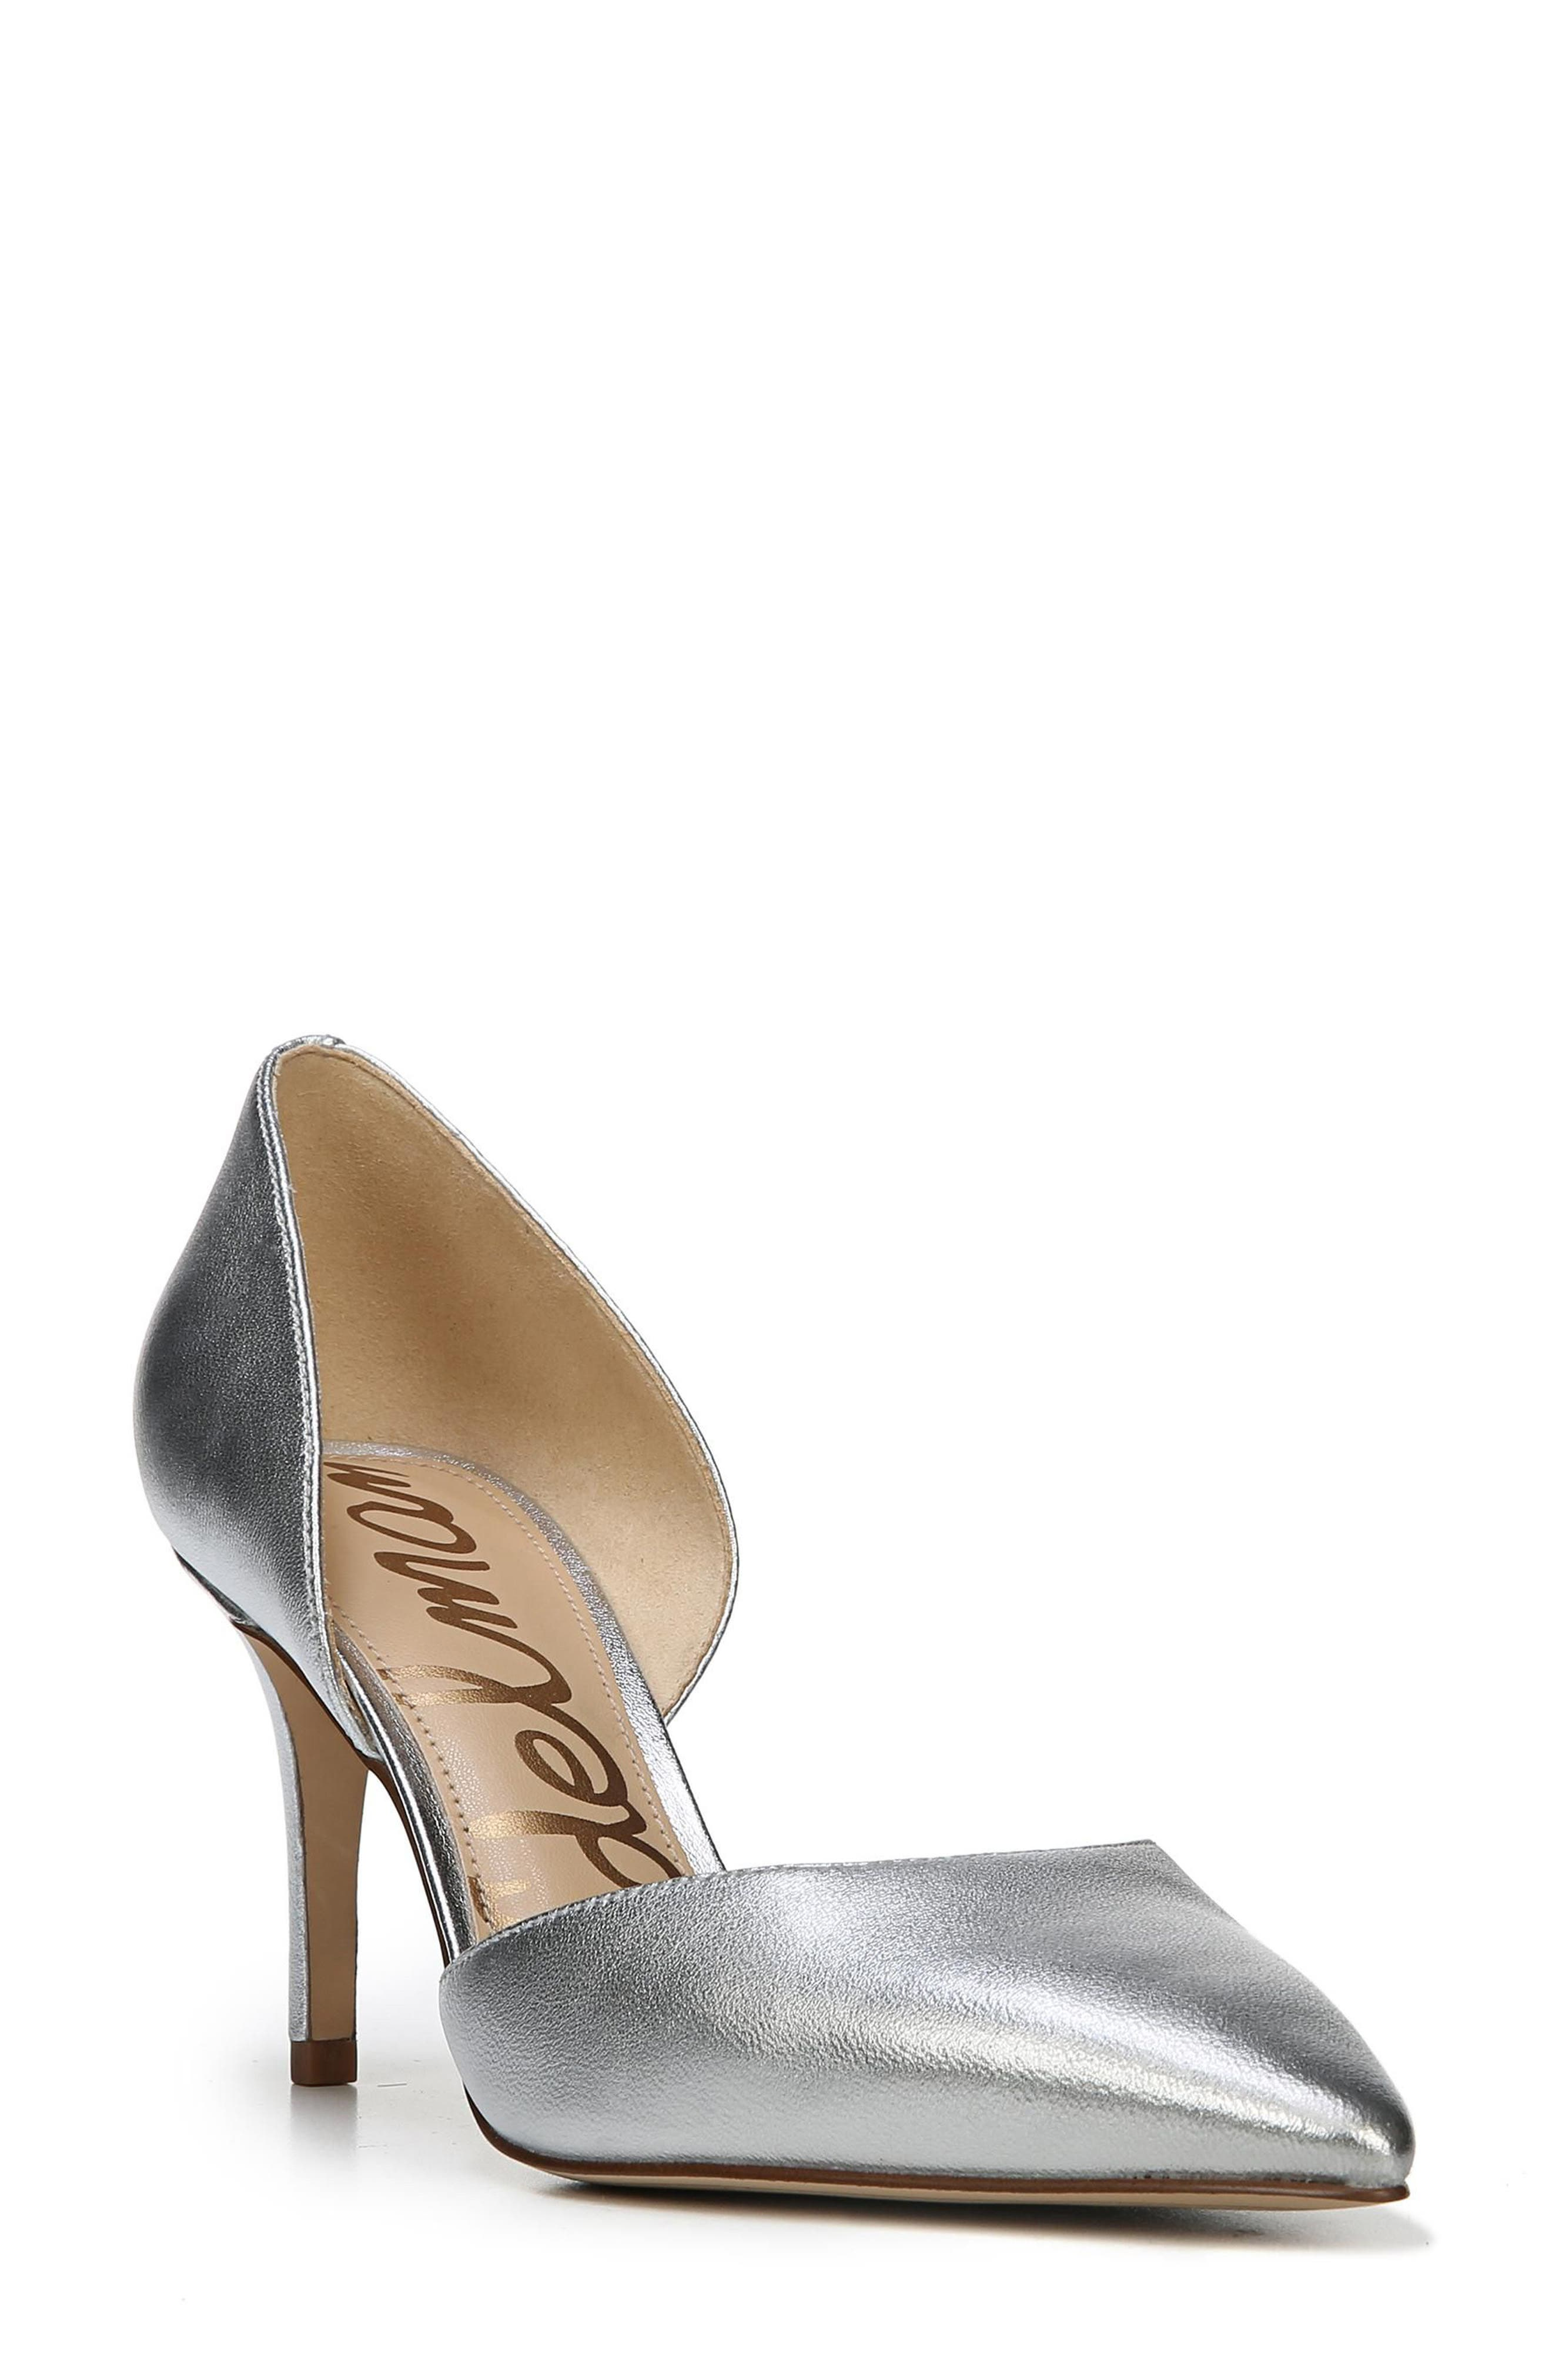 'Telsa' d'Orsay Pointy Toe Pump,                             Main thumbnail 1, color,                             Soft Silver Leather